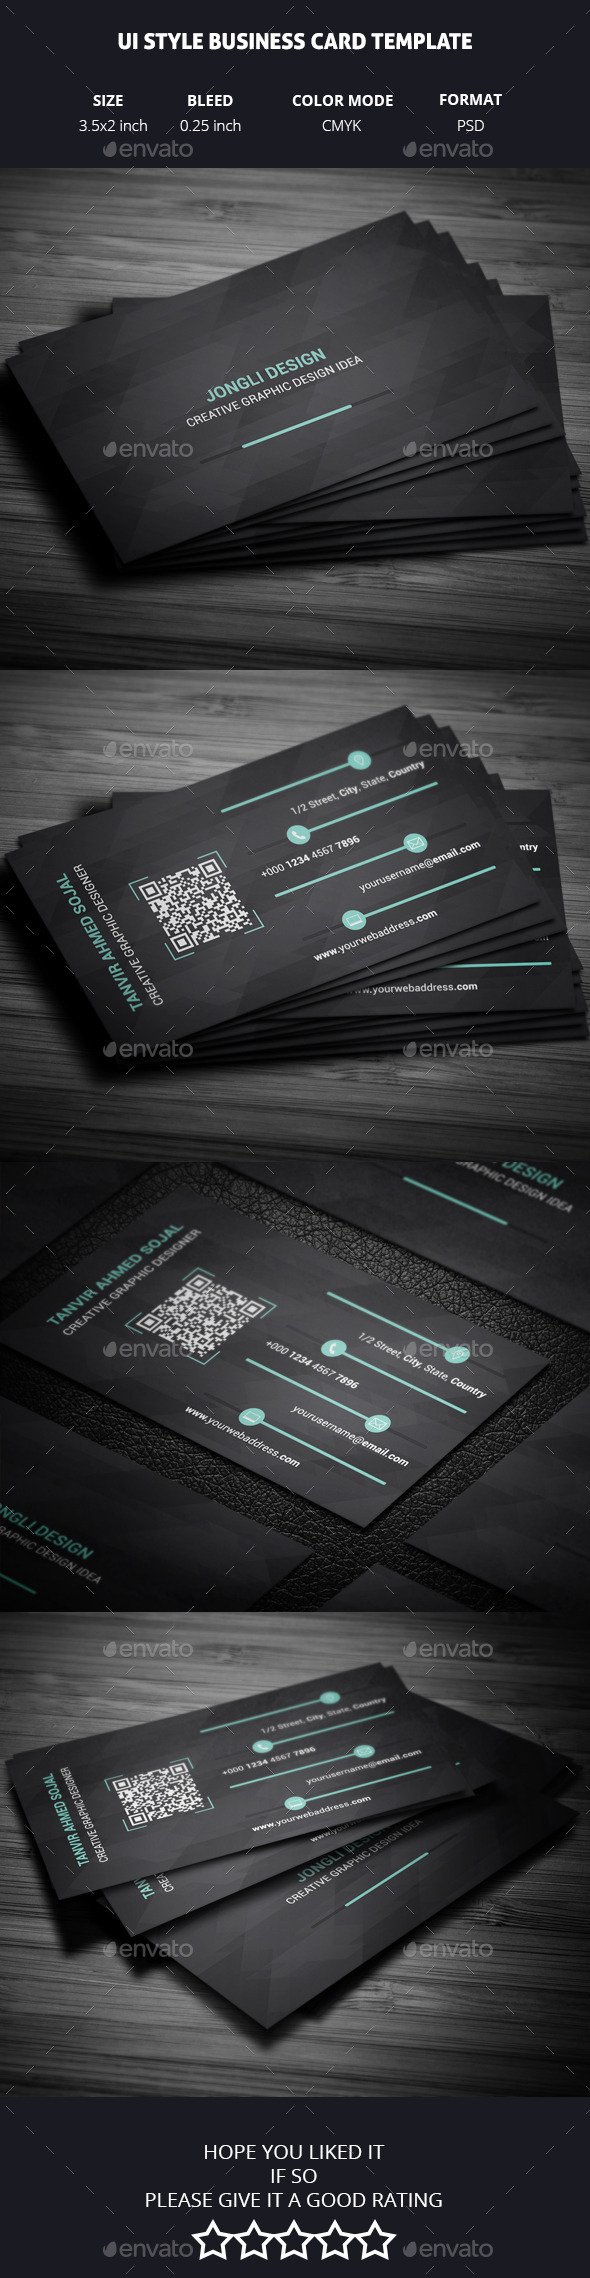 GraphicRiver UI Style Business Card Template 11157929